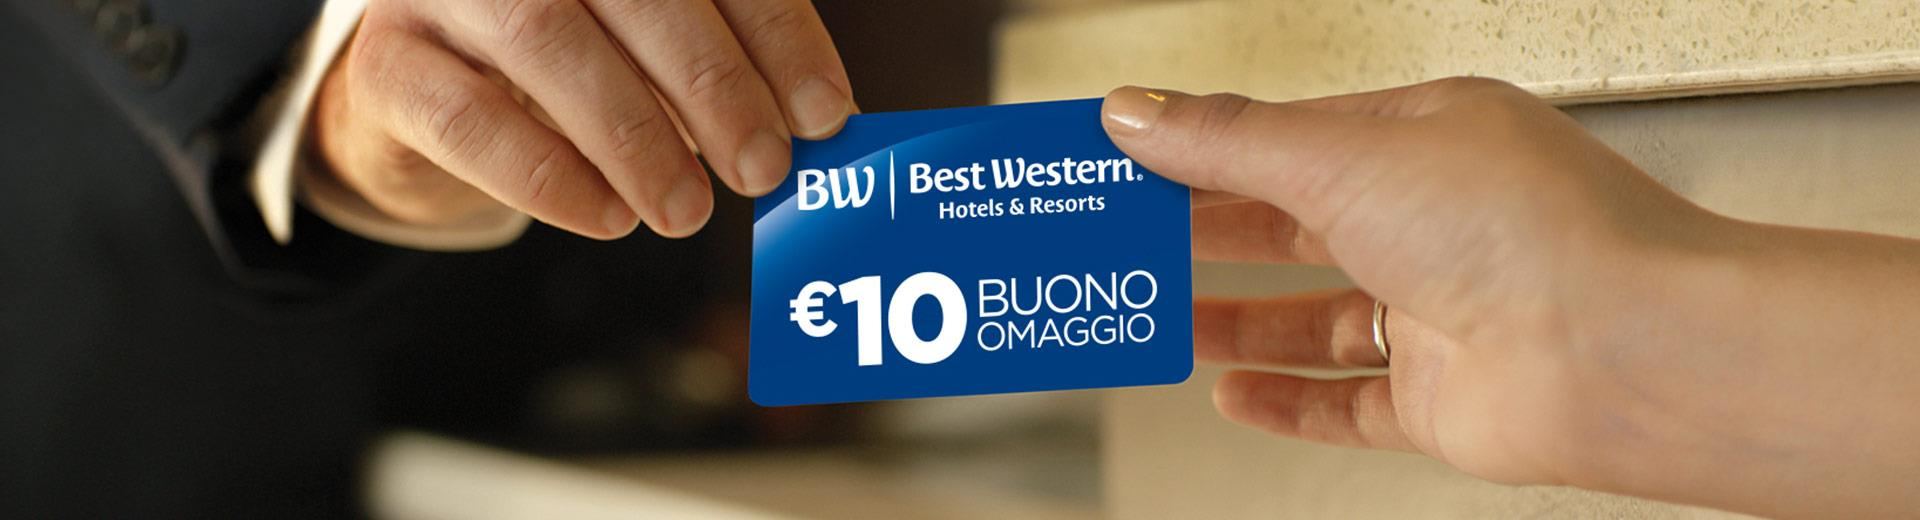 Winter Promotion BW Rewards® - Hotel Crimea Torino